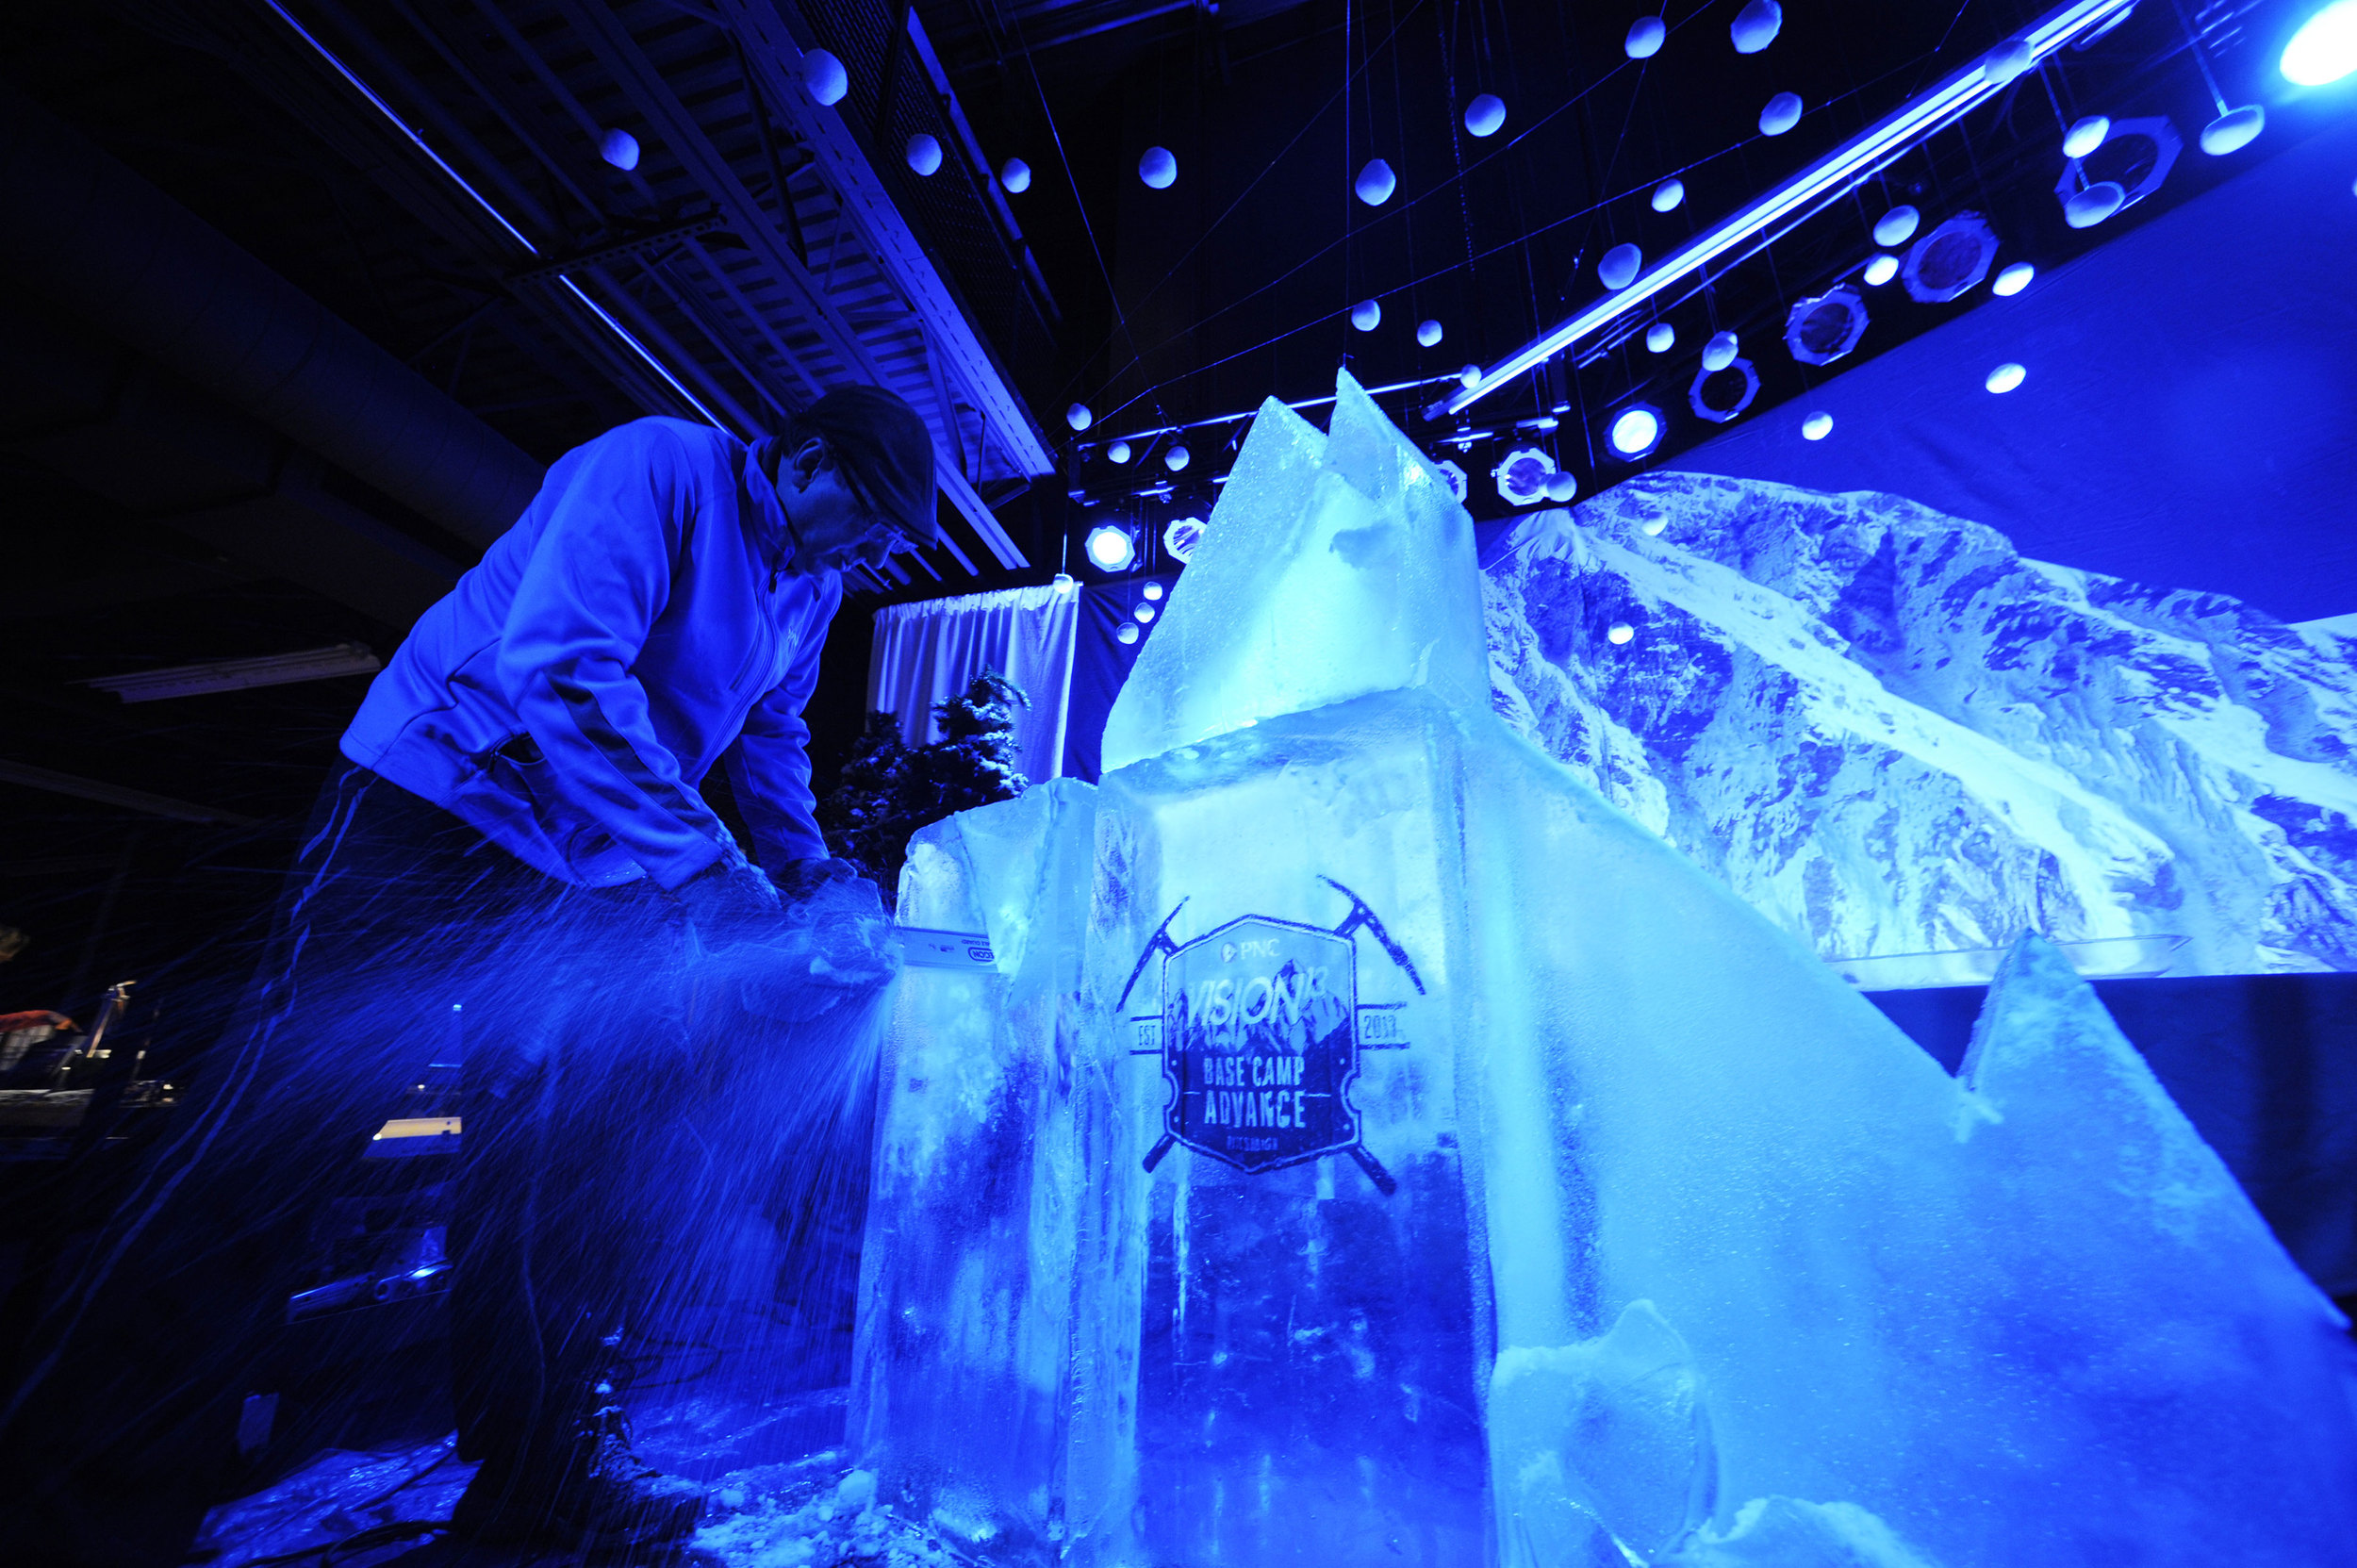 carving ice vision13